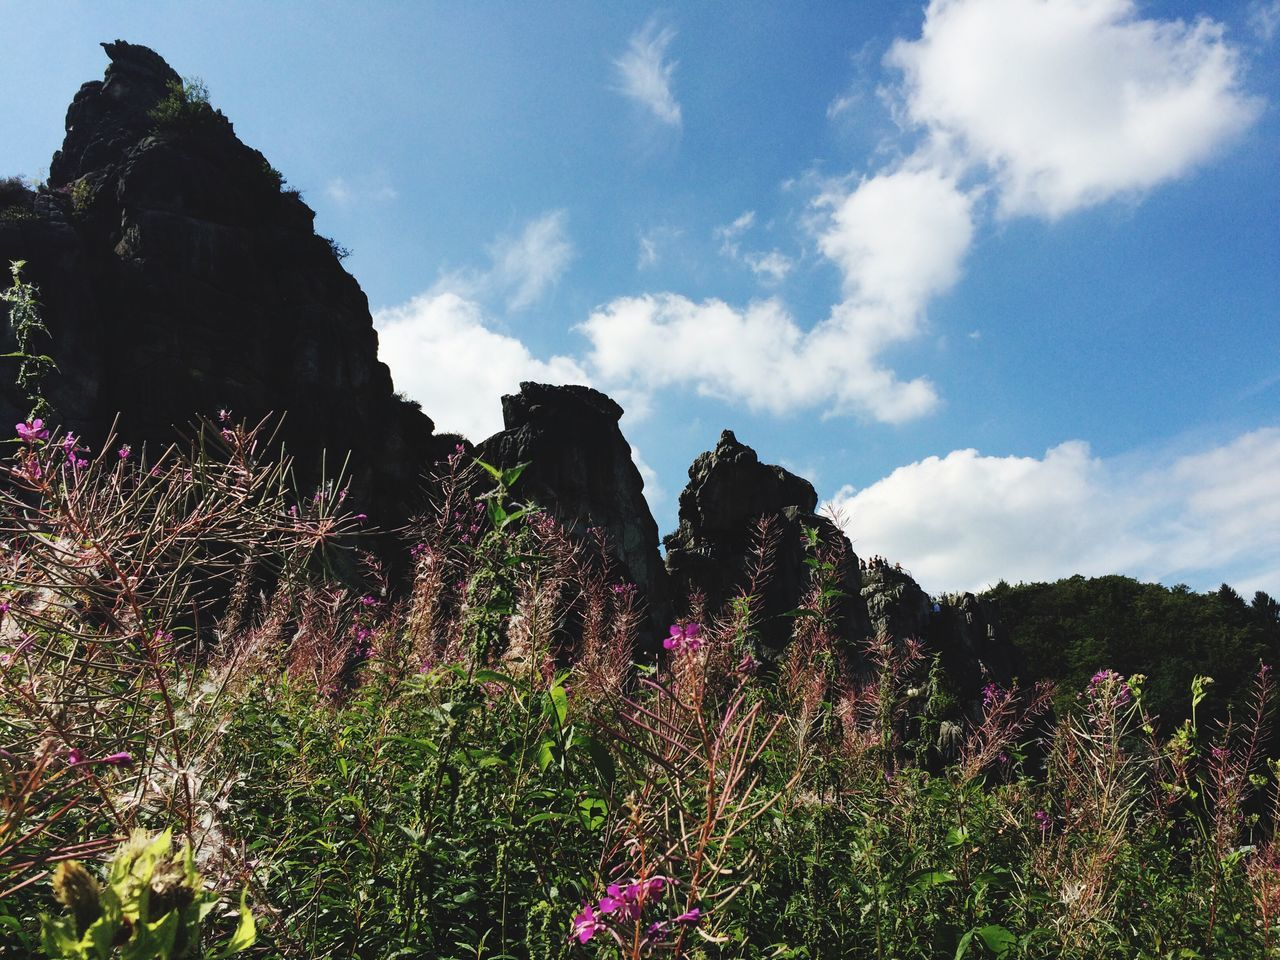 growth, nature, flower, beauty in nature, tranquility, plant, outdoors, sky, no people, day, scenics, landscape, freshness, tree